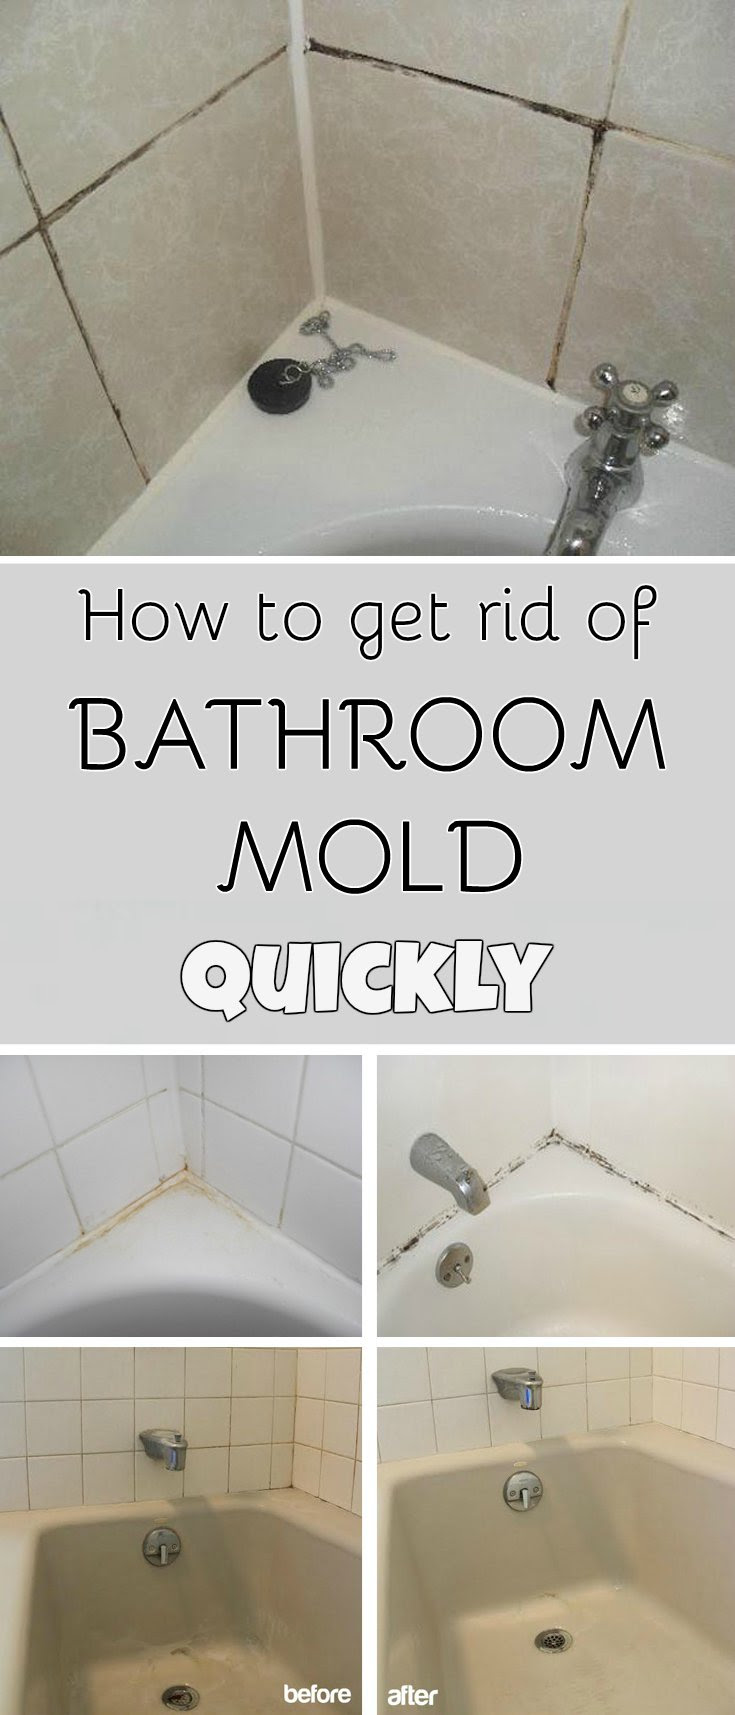 How To Get Rid Of Bathroom Mold Quickly MyCleaningSolutionscom